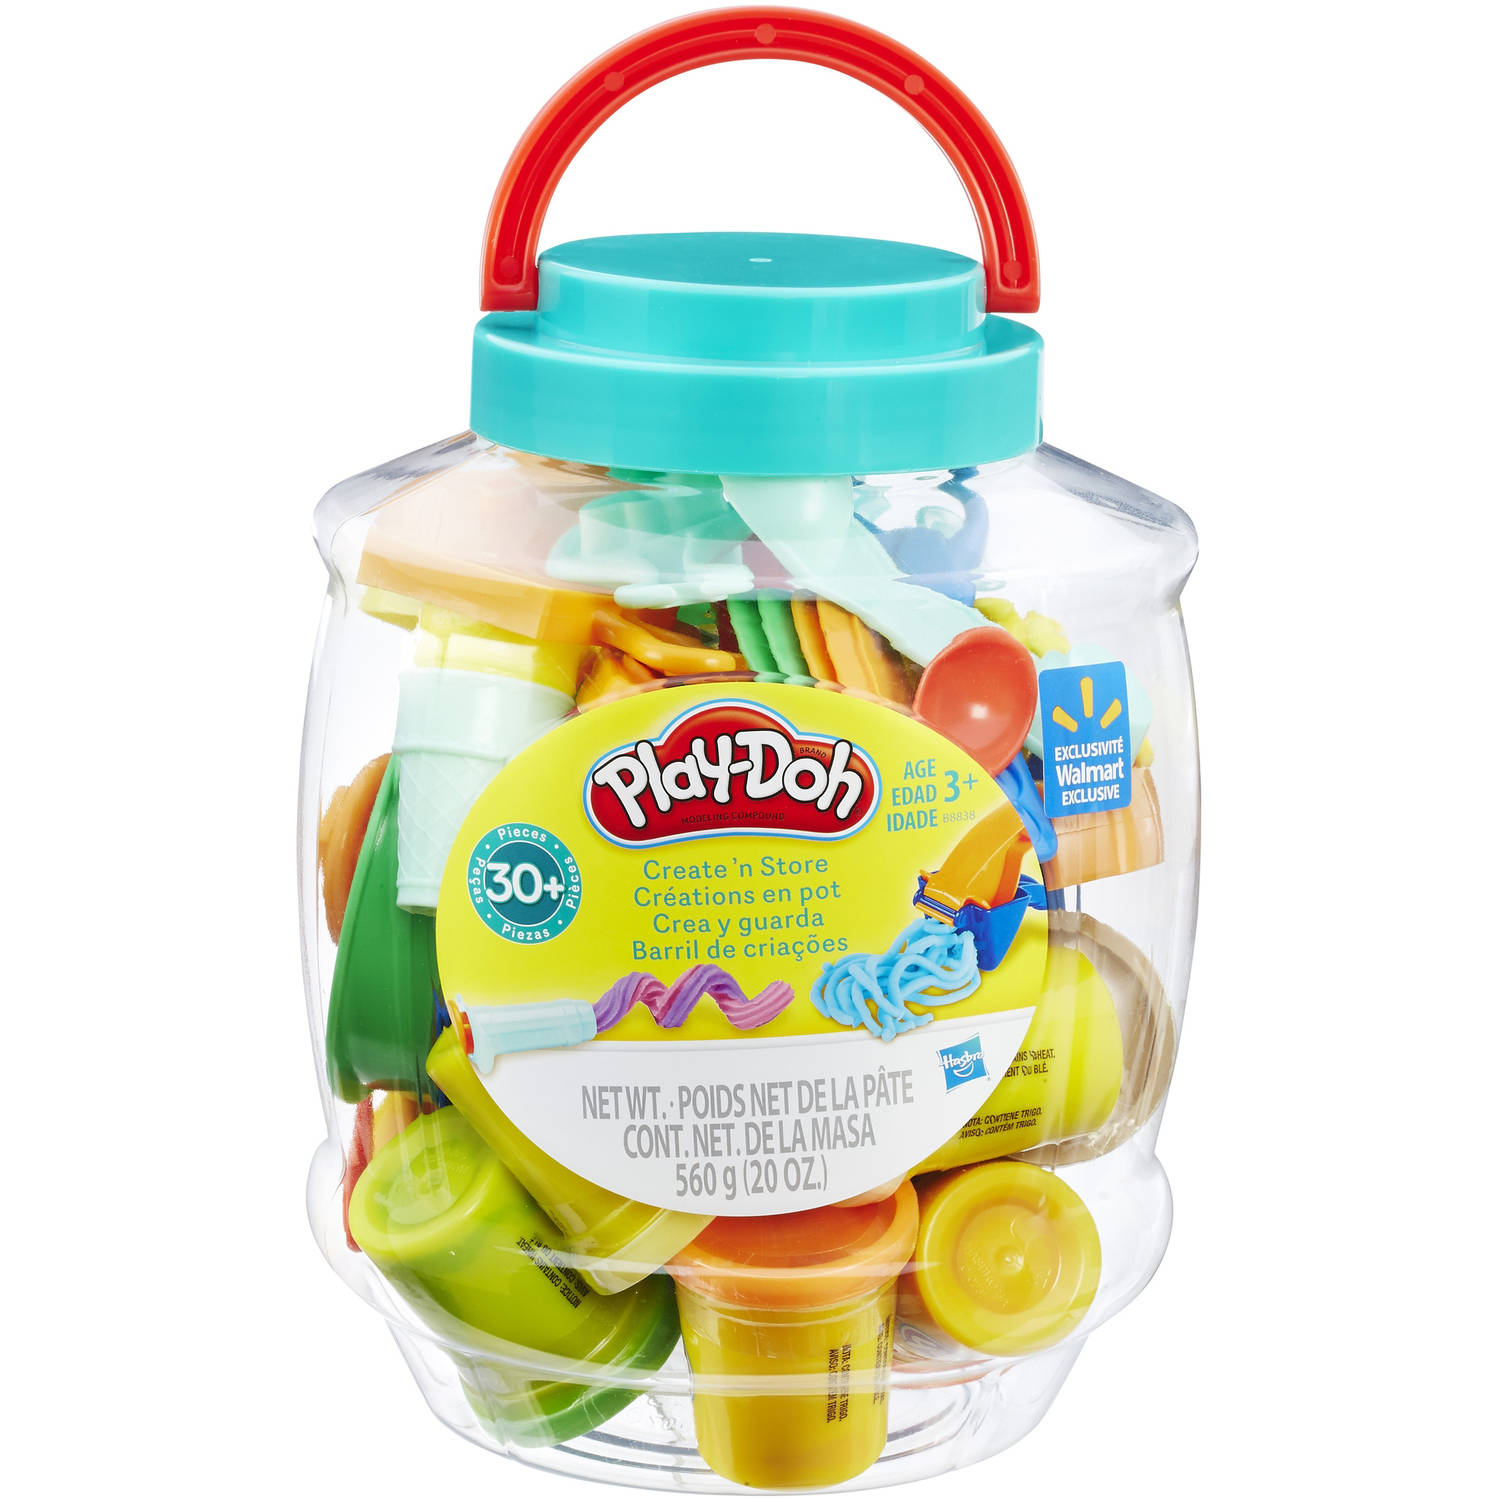 Play-Doh Create N Store Bucket with 10 Cans of Dough & 30+ Tools, 20 oz